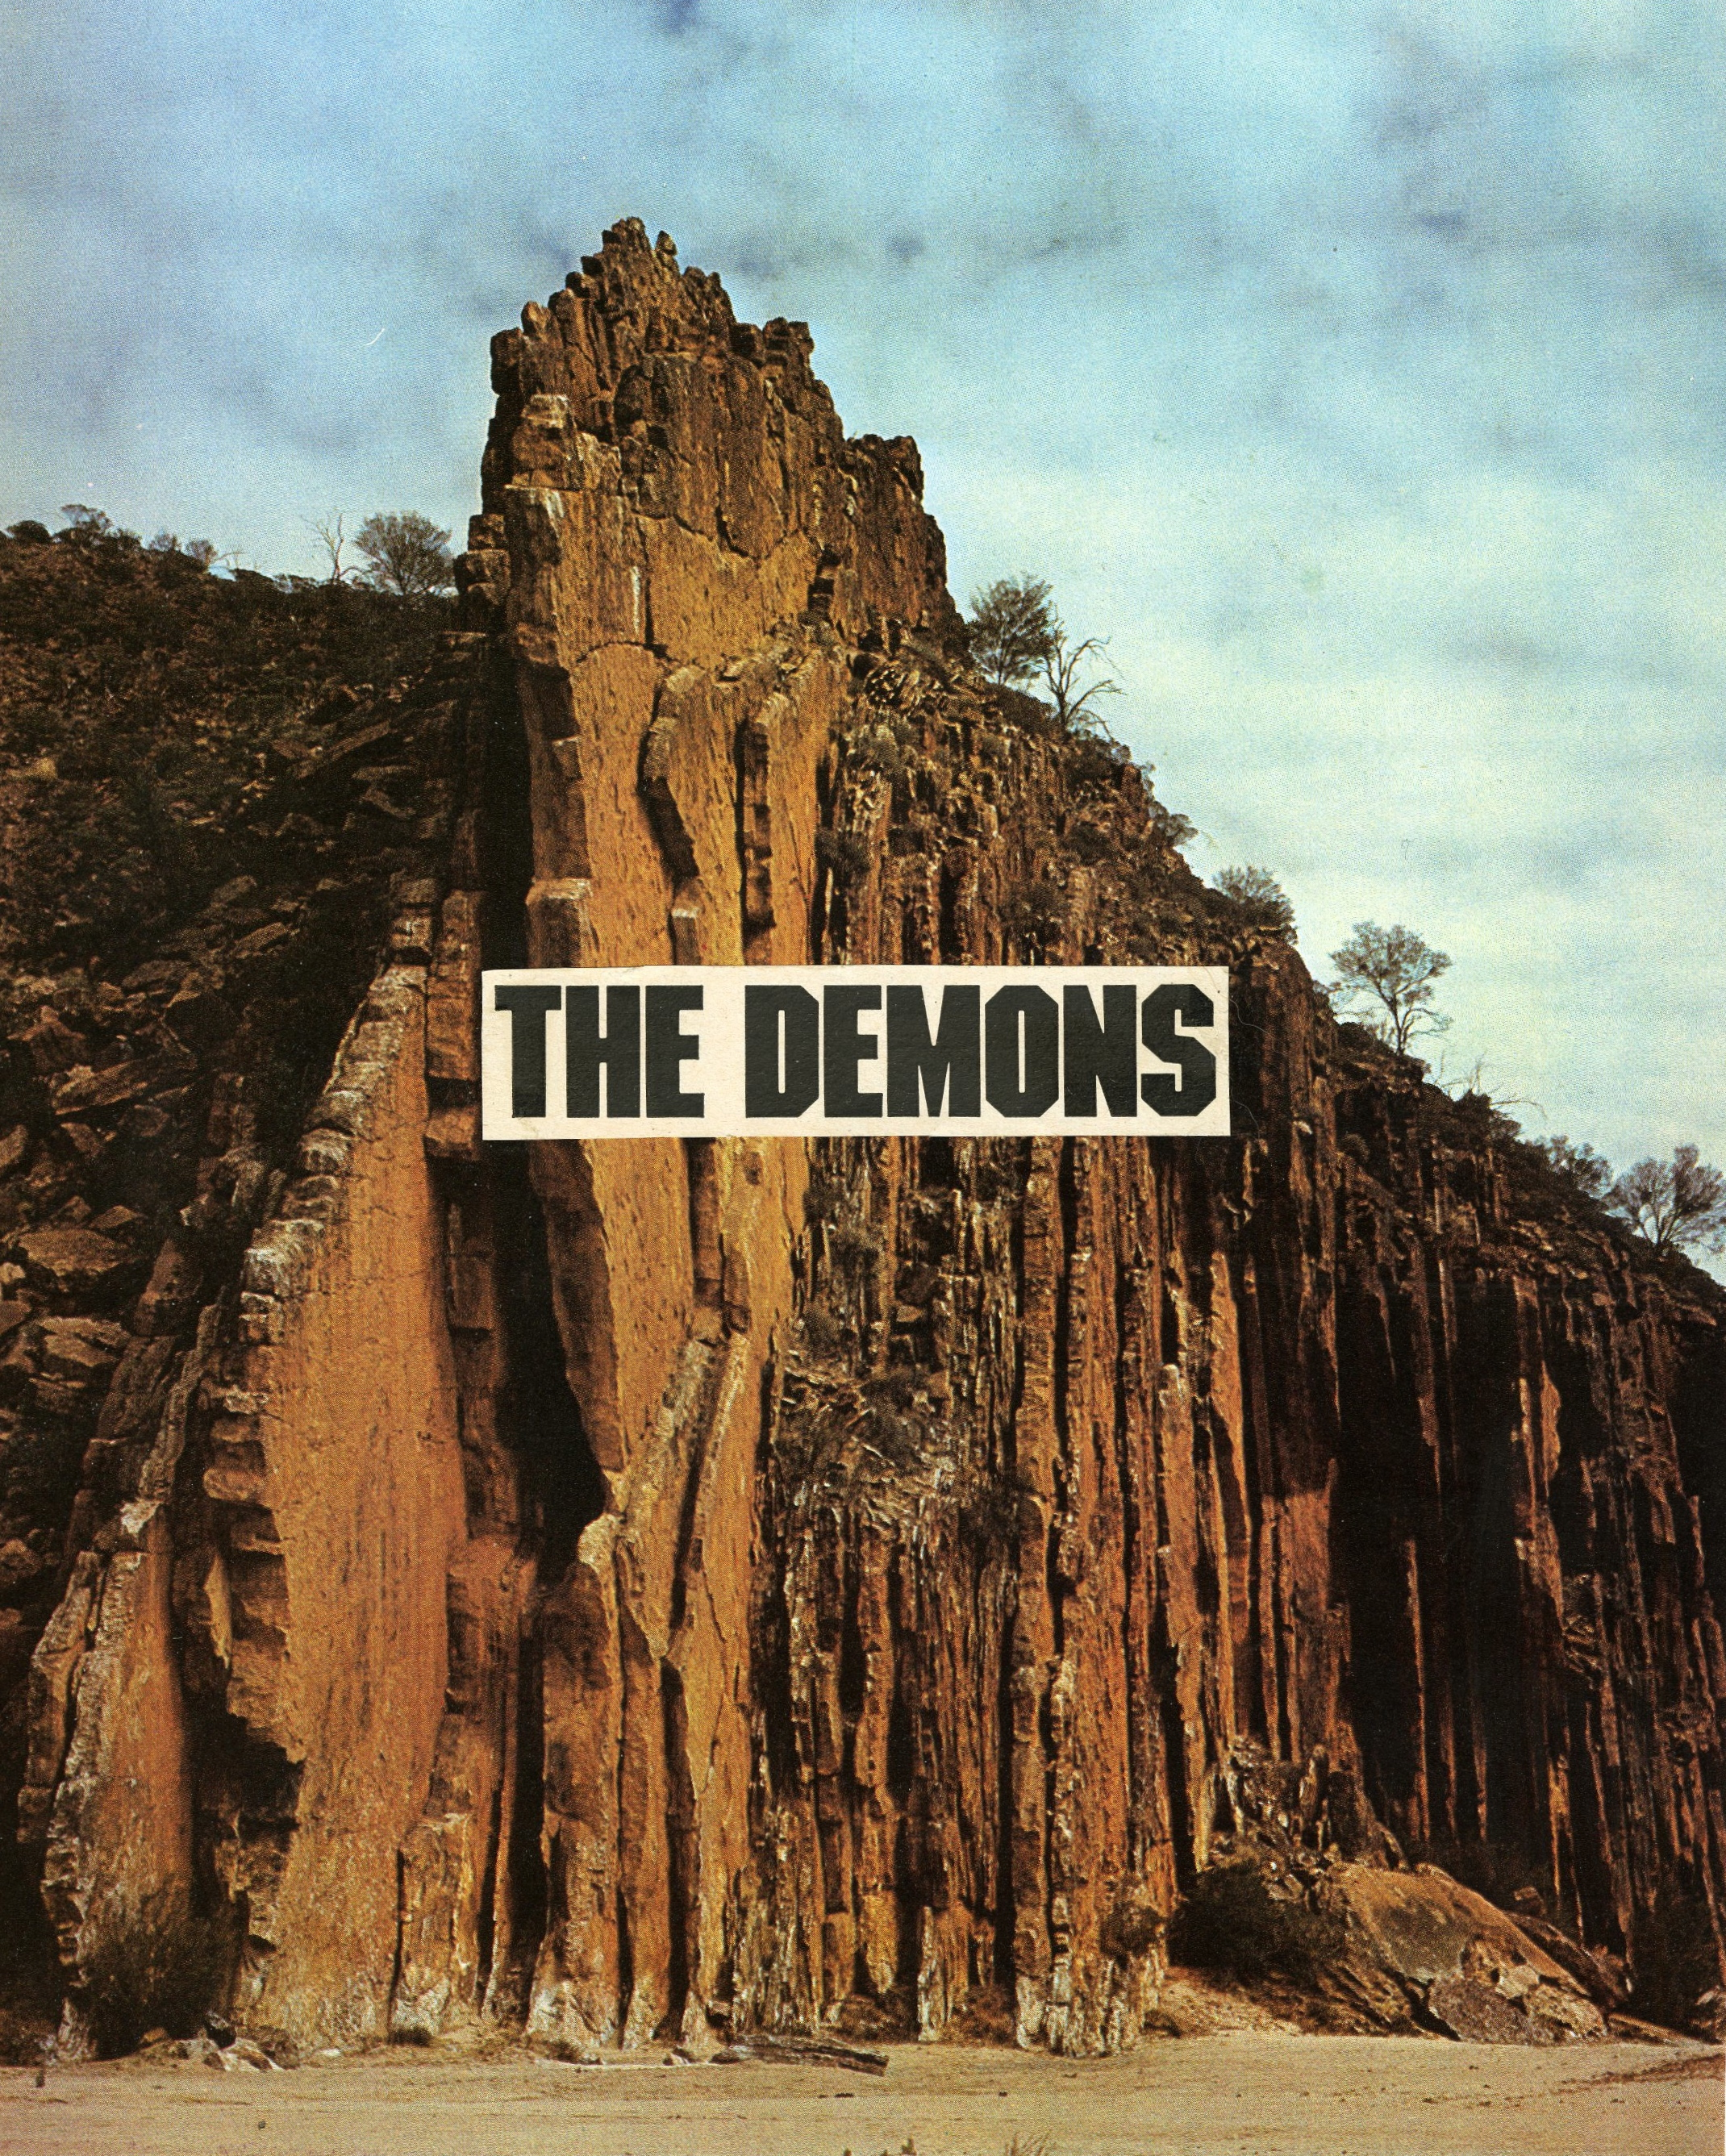 The Demons, 2013.jpg